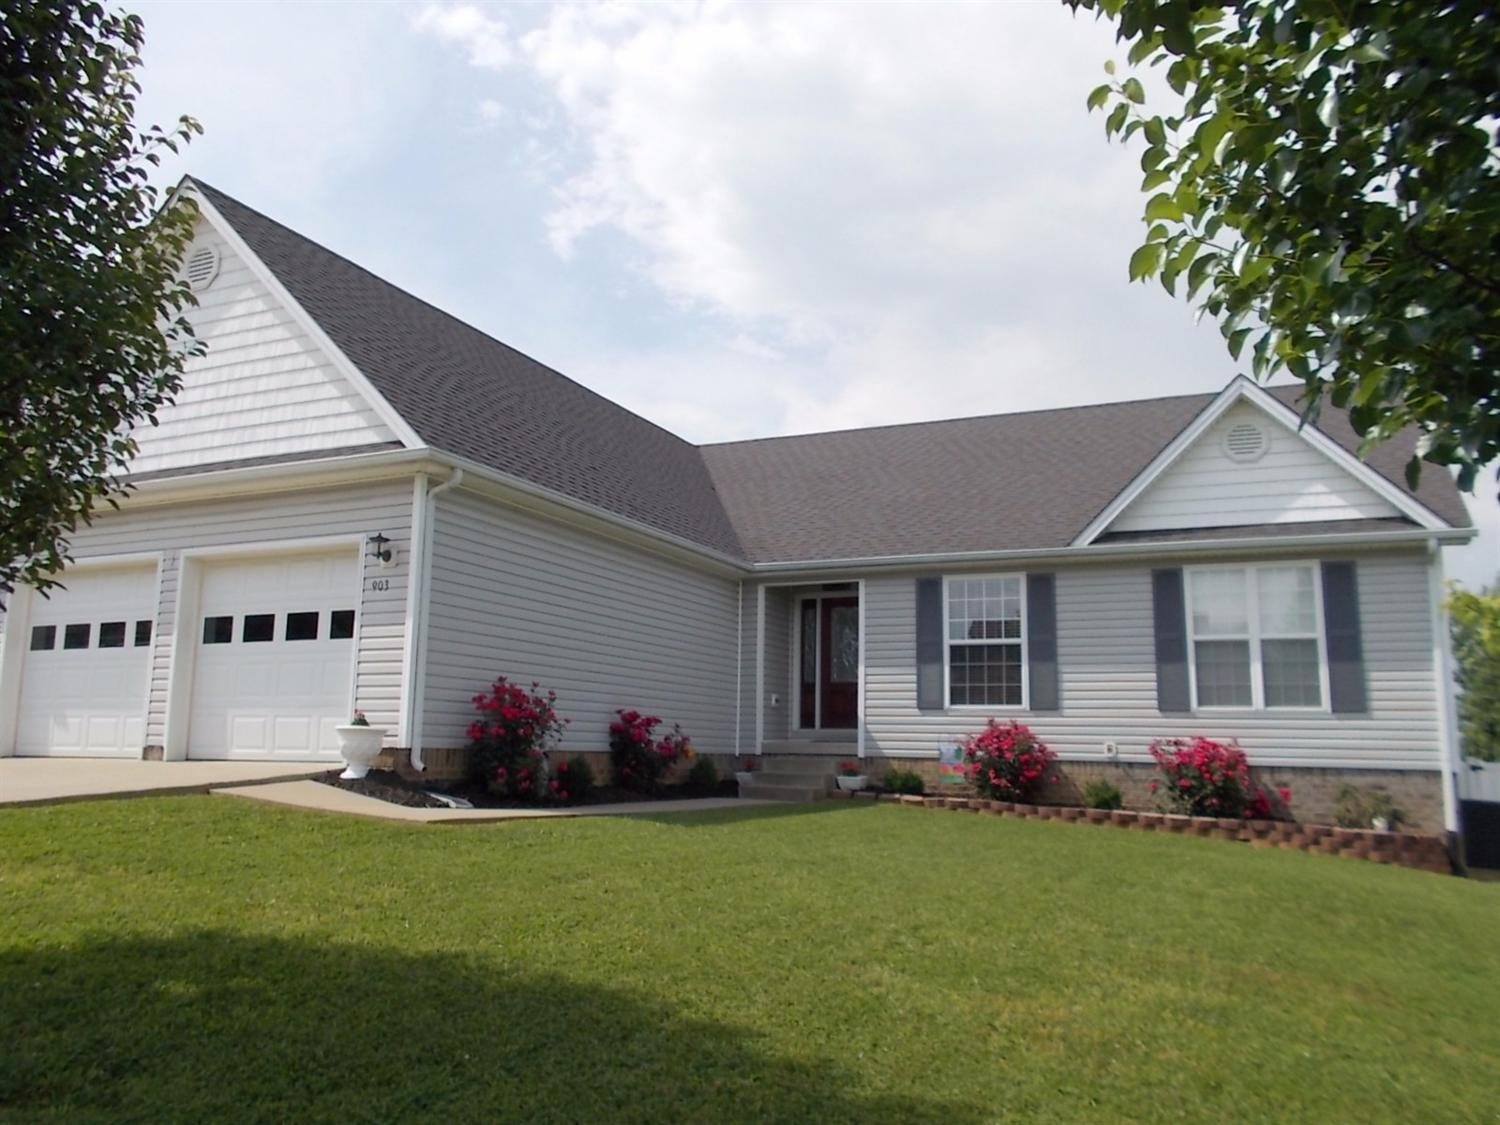 903 Equestrian Way, Mt Sterling, KY 40353